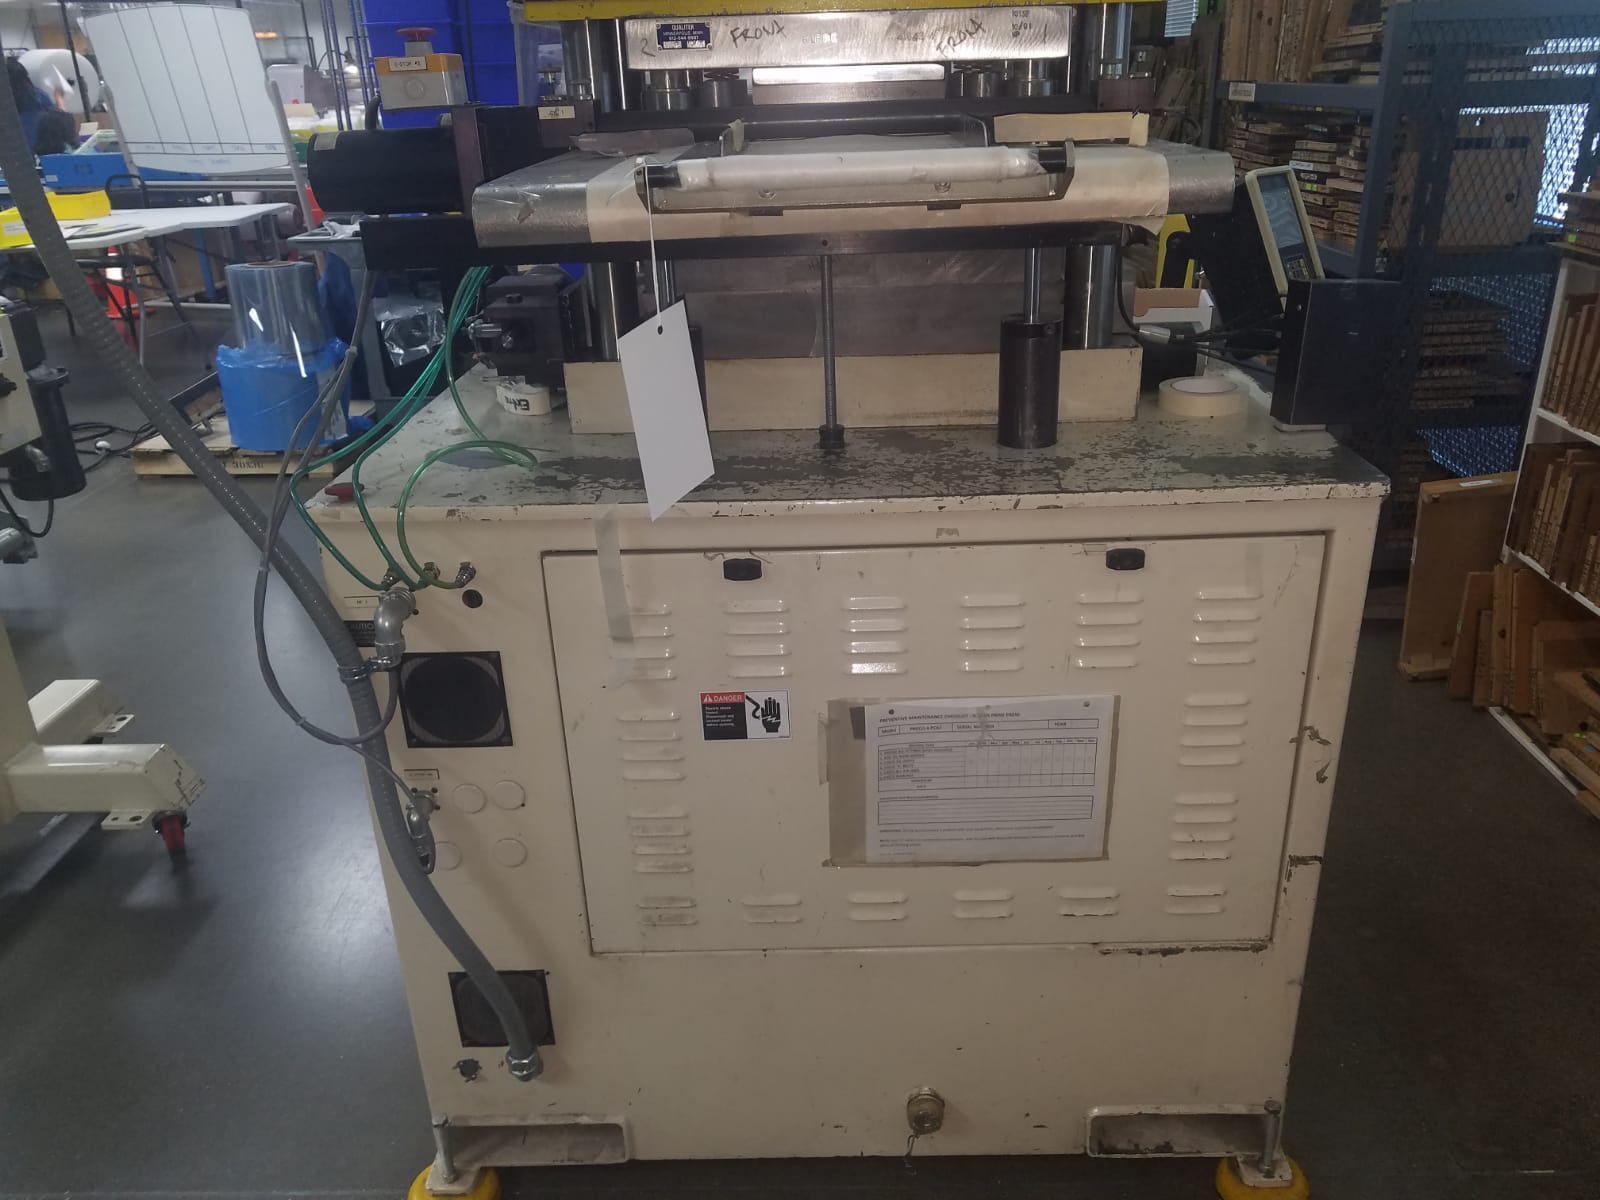 Mark Andy 2200 - Used Flexo Printing Presses and Used Flexographic Equipment-21